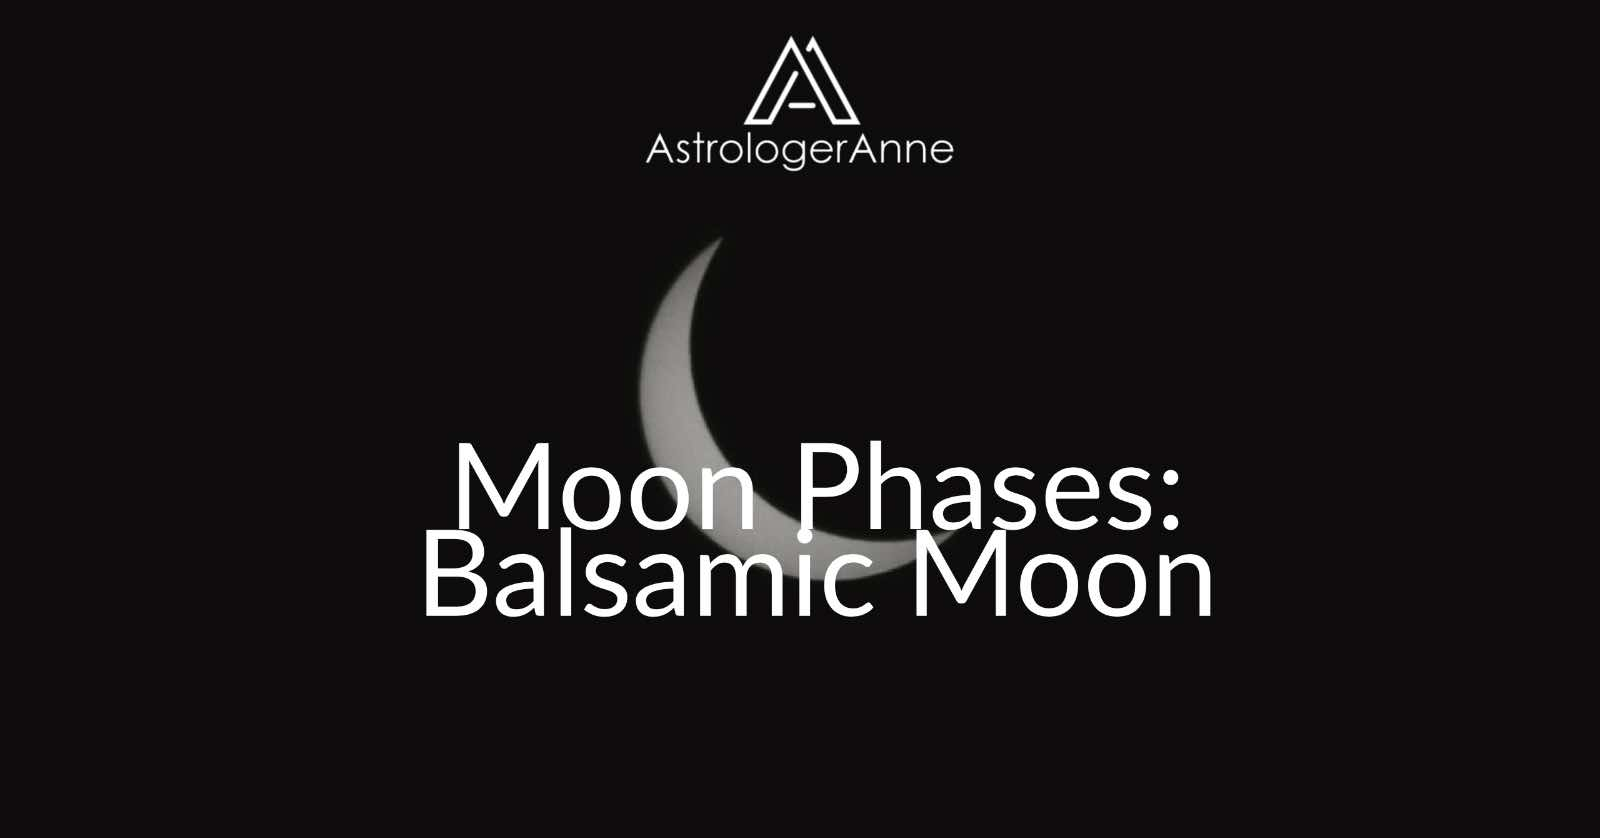 Balsamic Moon phase graphic